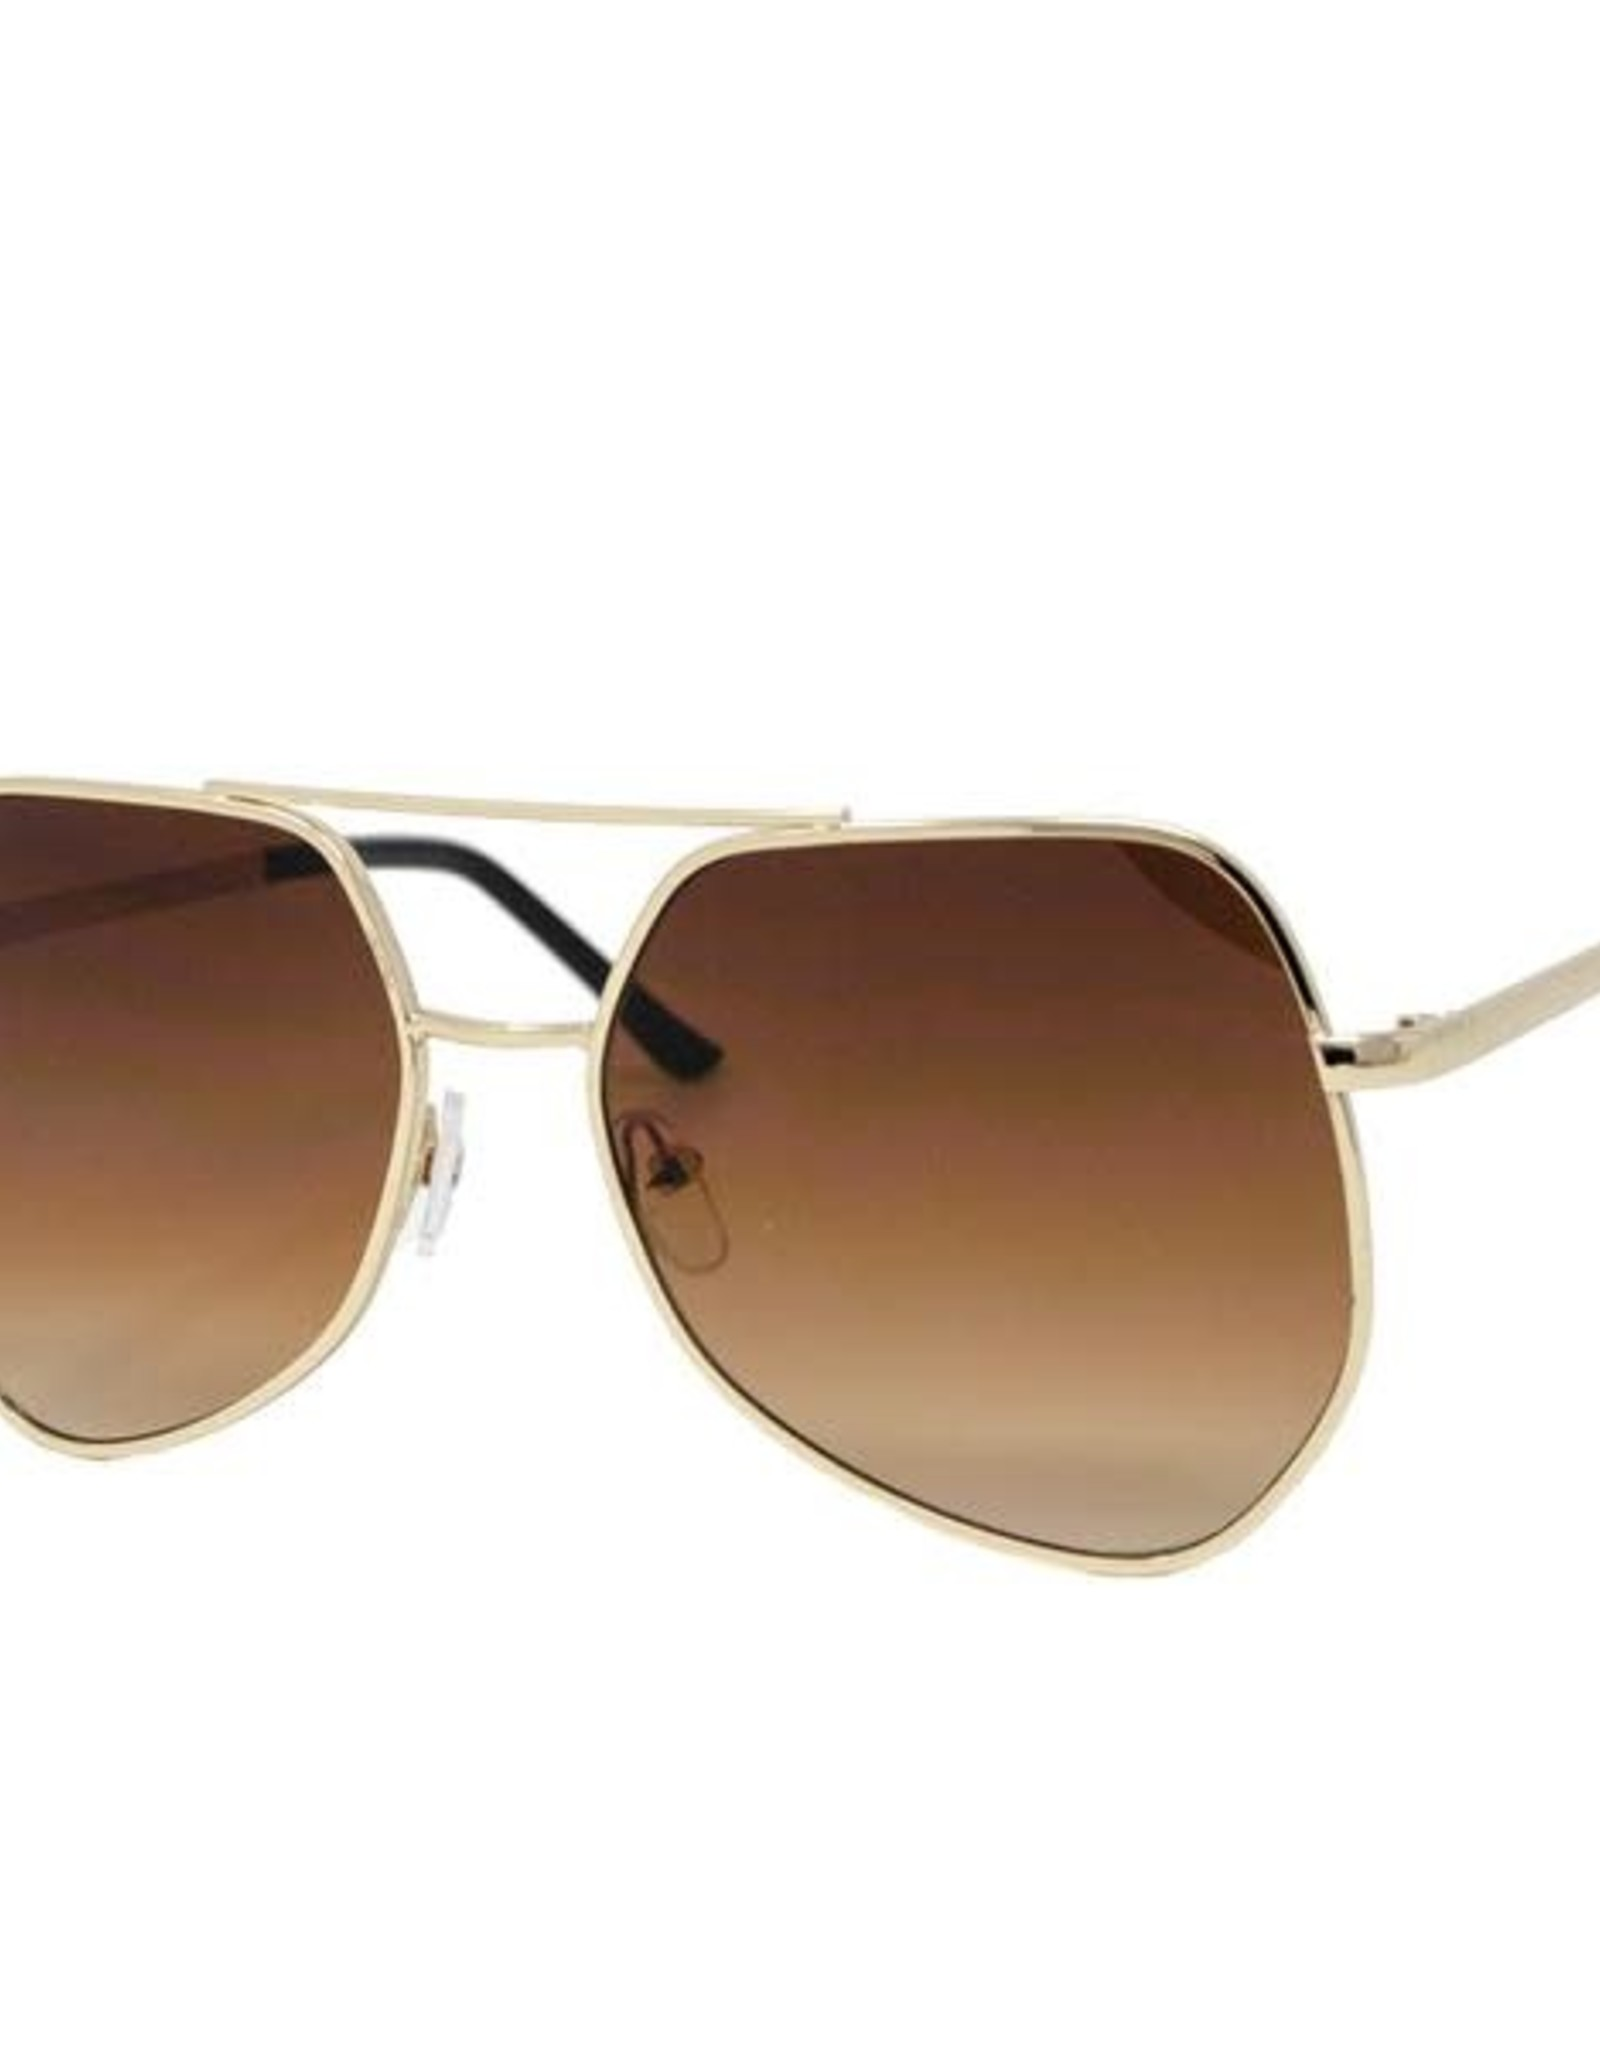 Zomi Gems Gold Retro Sunglasses